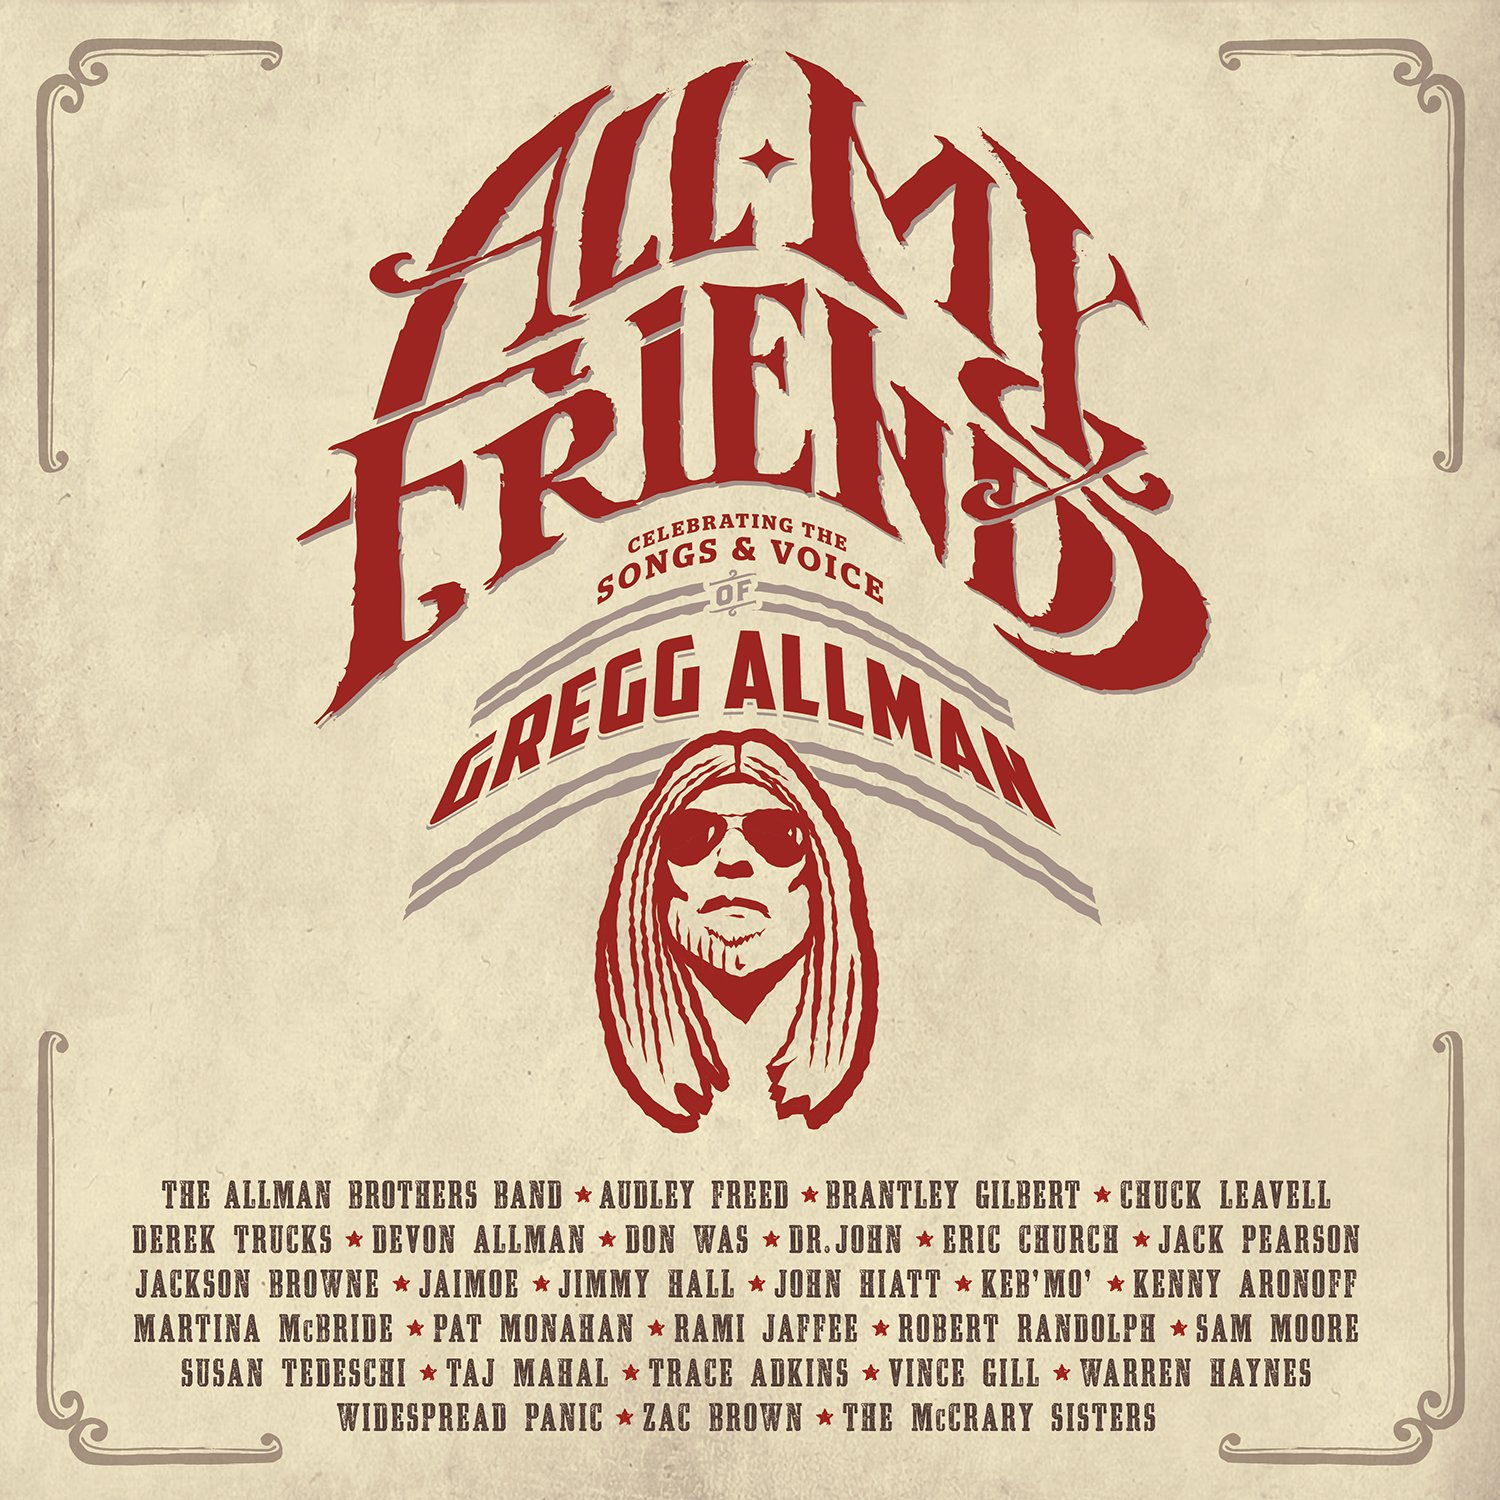 All My Friends: Celebrating The Songs & Voice Of Gregg Allman (2 CD + DVD) 81Y94WE2DsL._SL1500_